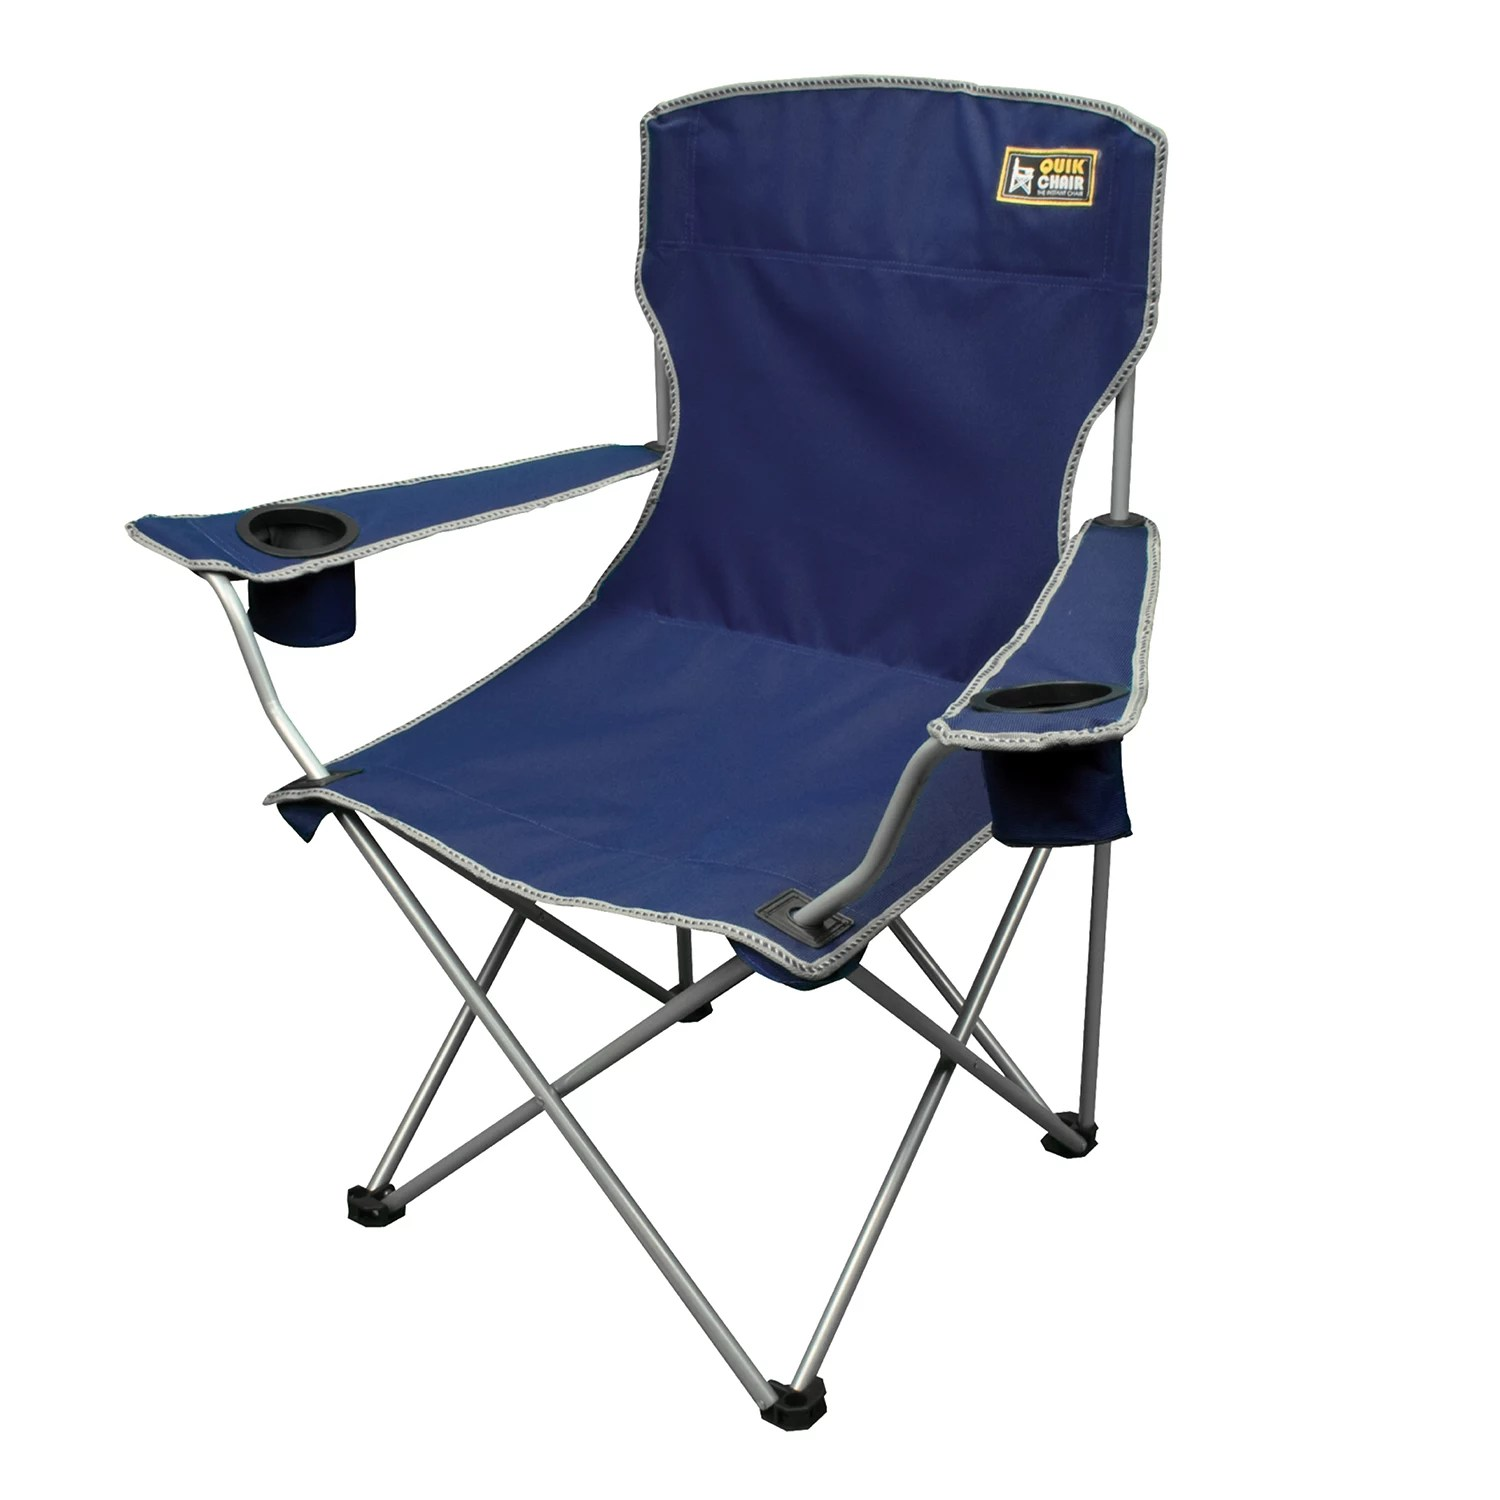 Kohls Folding Chairs Quik Chair Deluxe Quad Folding Camp Chair